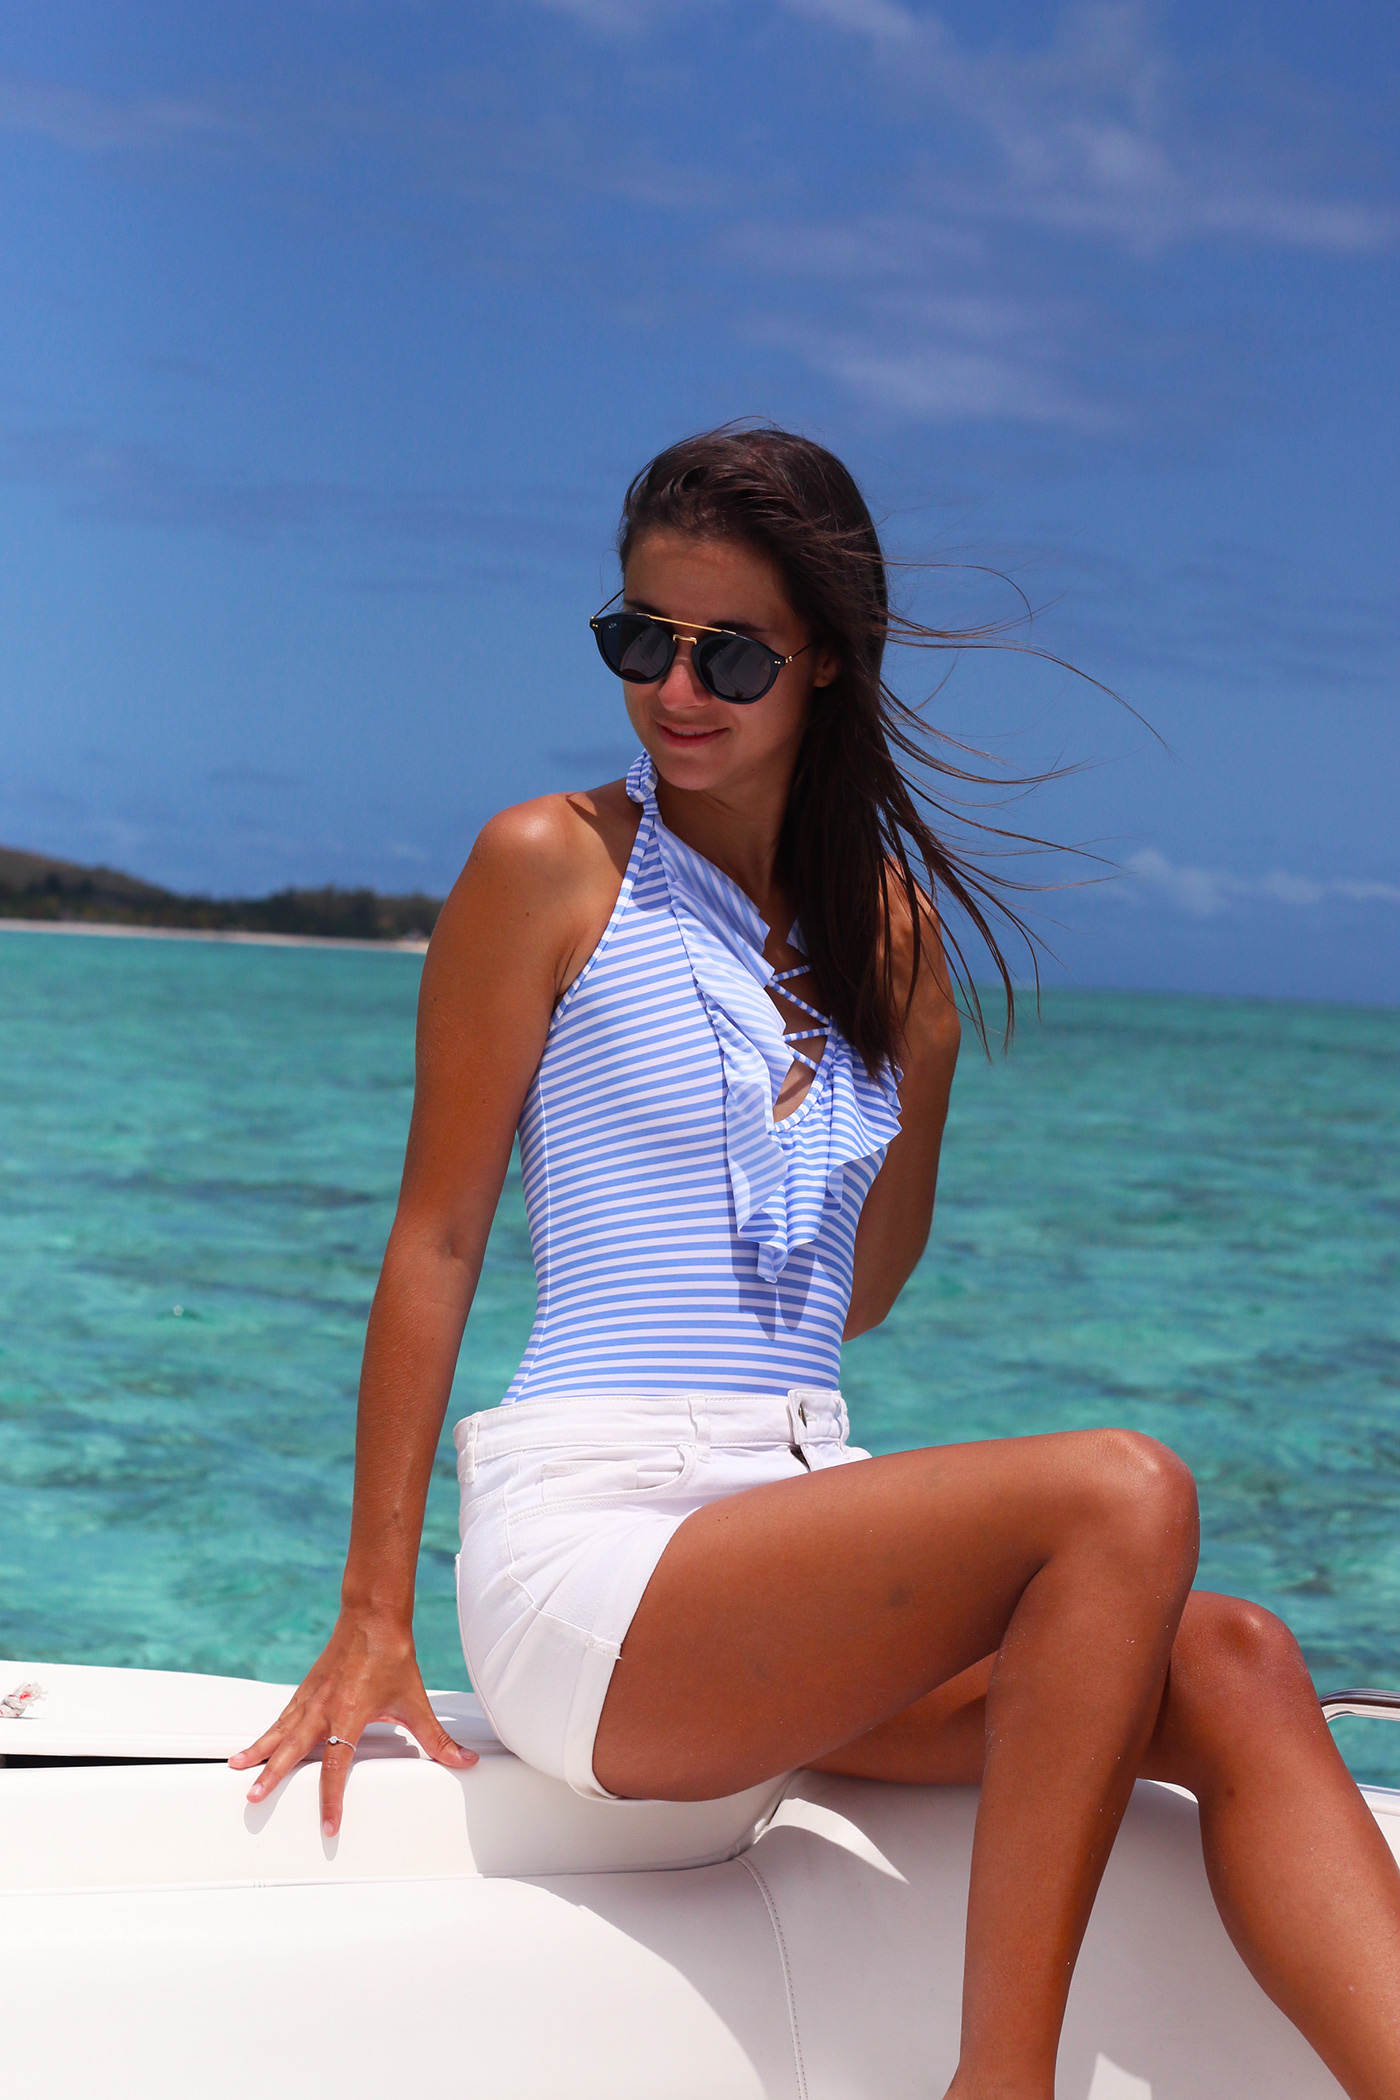 LUX* Le Morne, Ile Maurice, LUX* , hôtel, mer, eat life with style